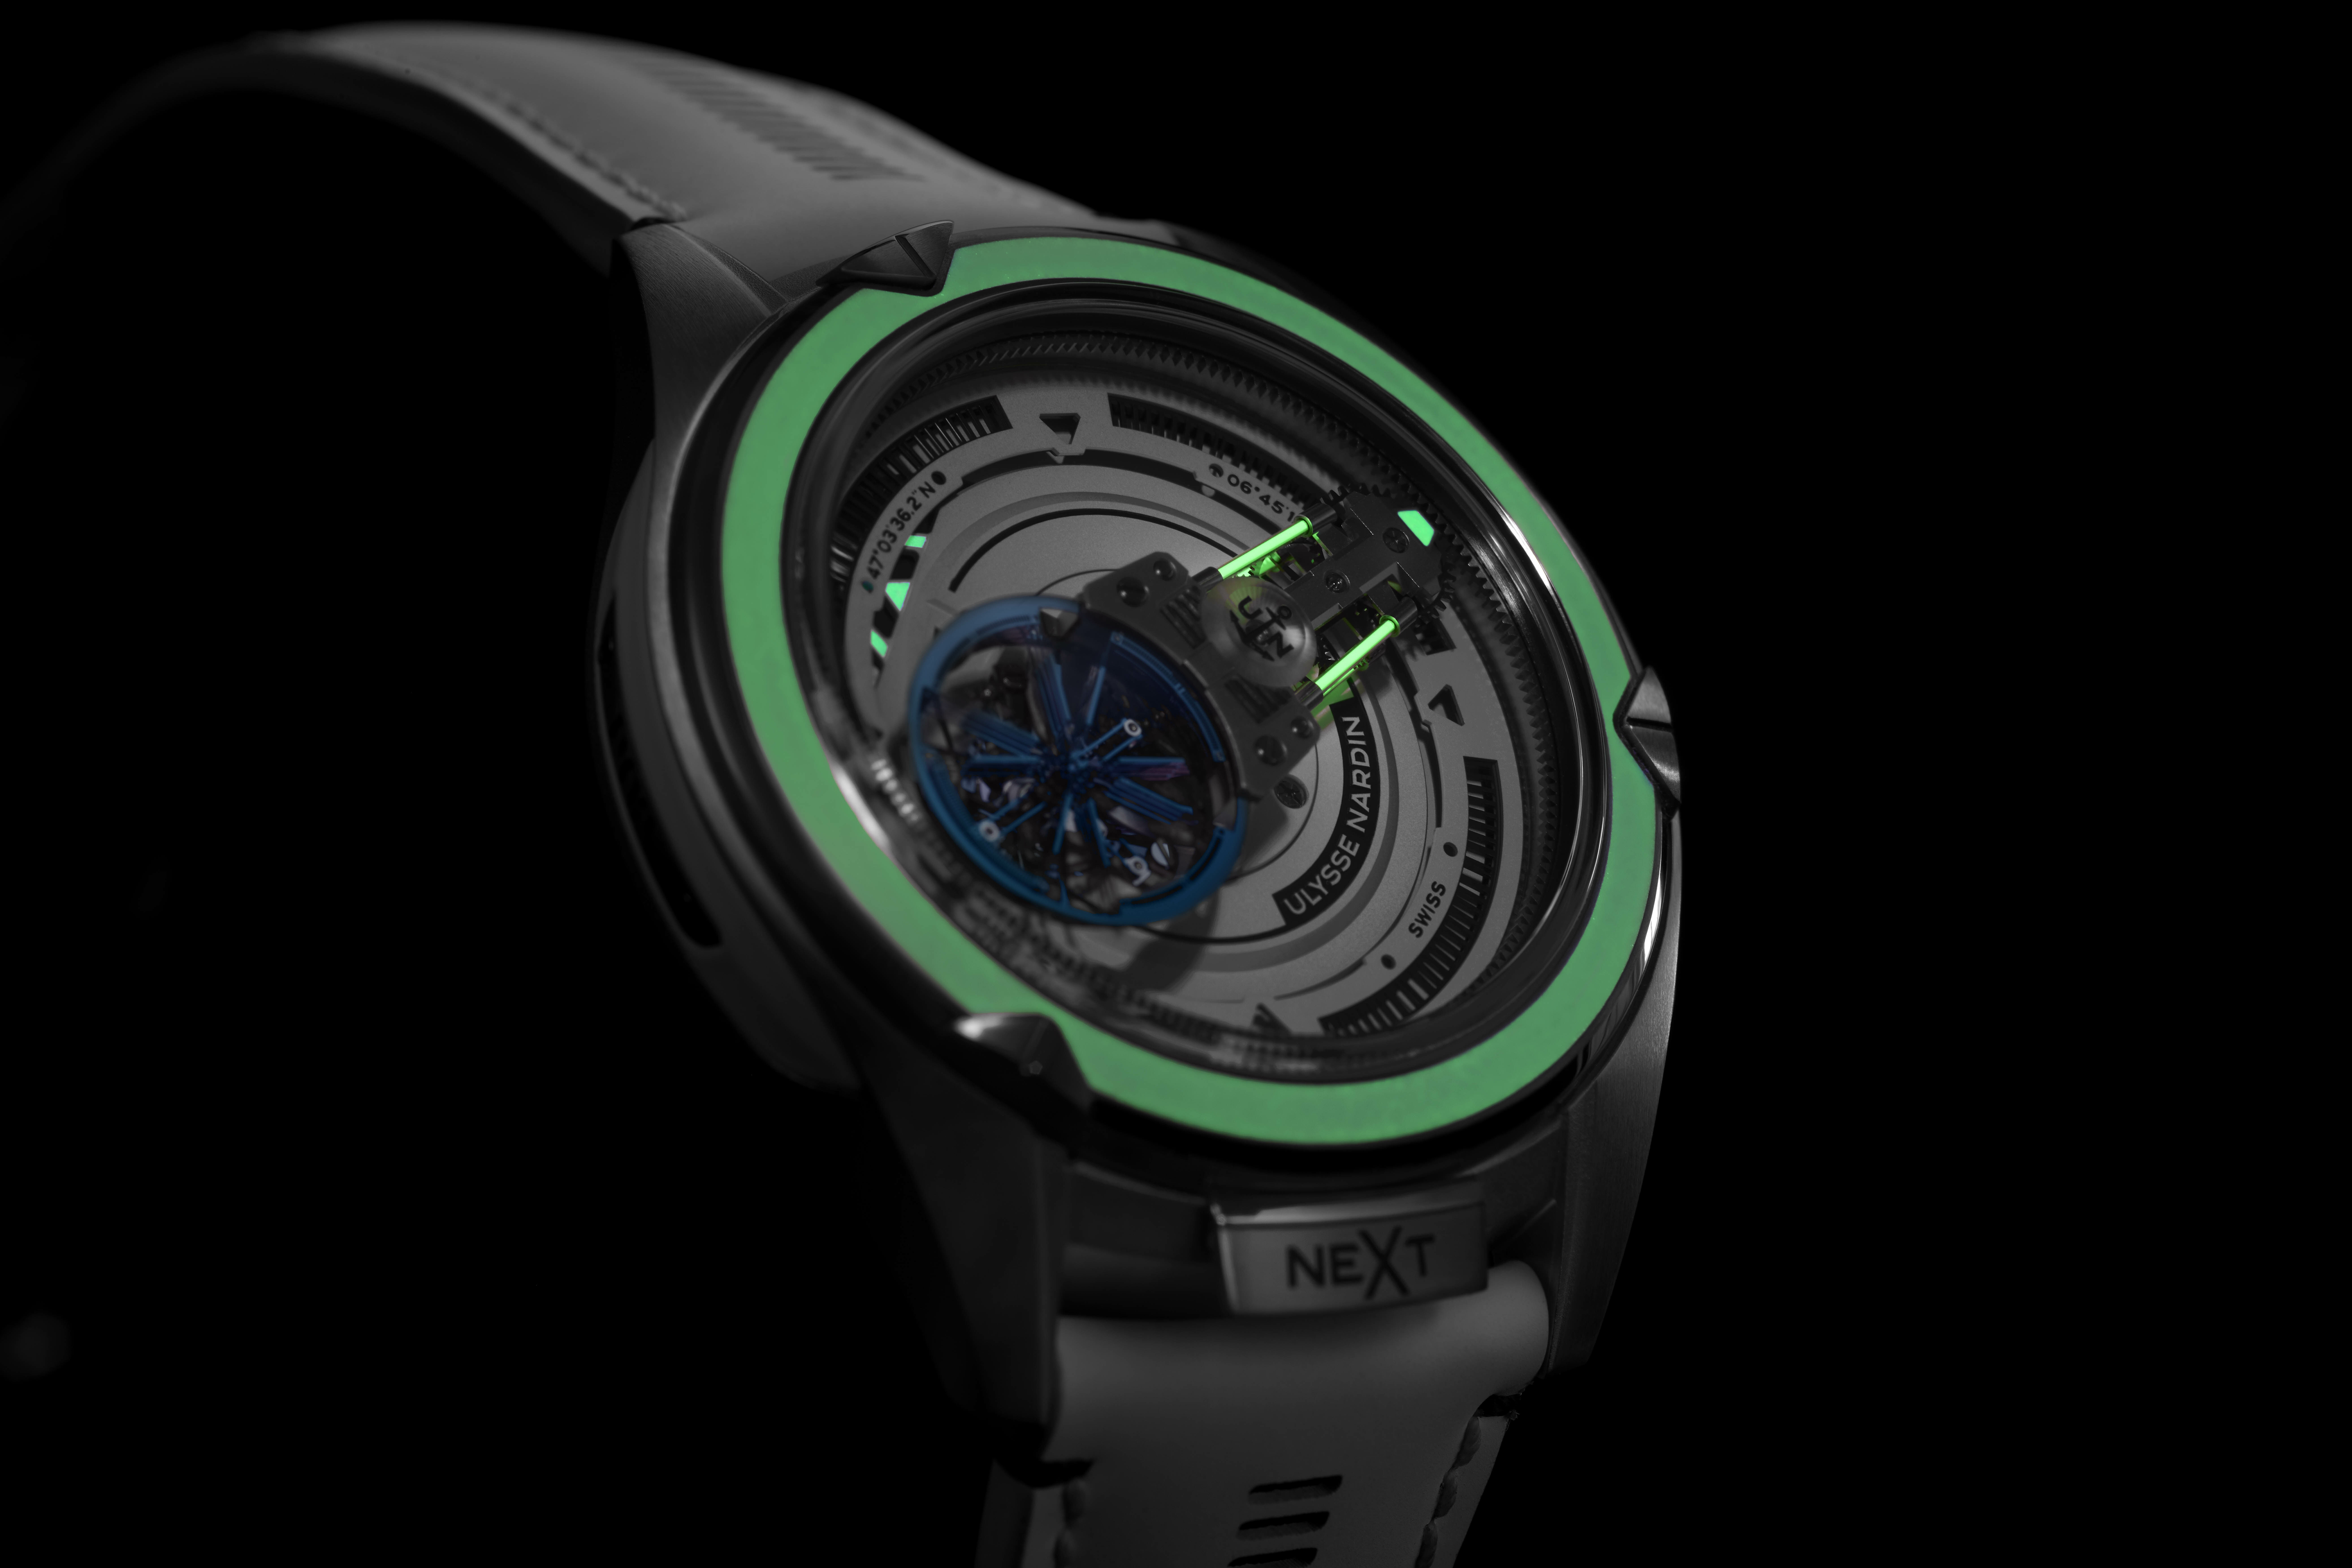 Is the Ulysse Nardin Freak neXt the future of watchmaking?